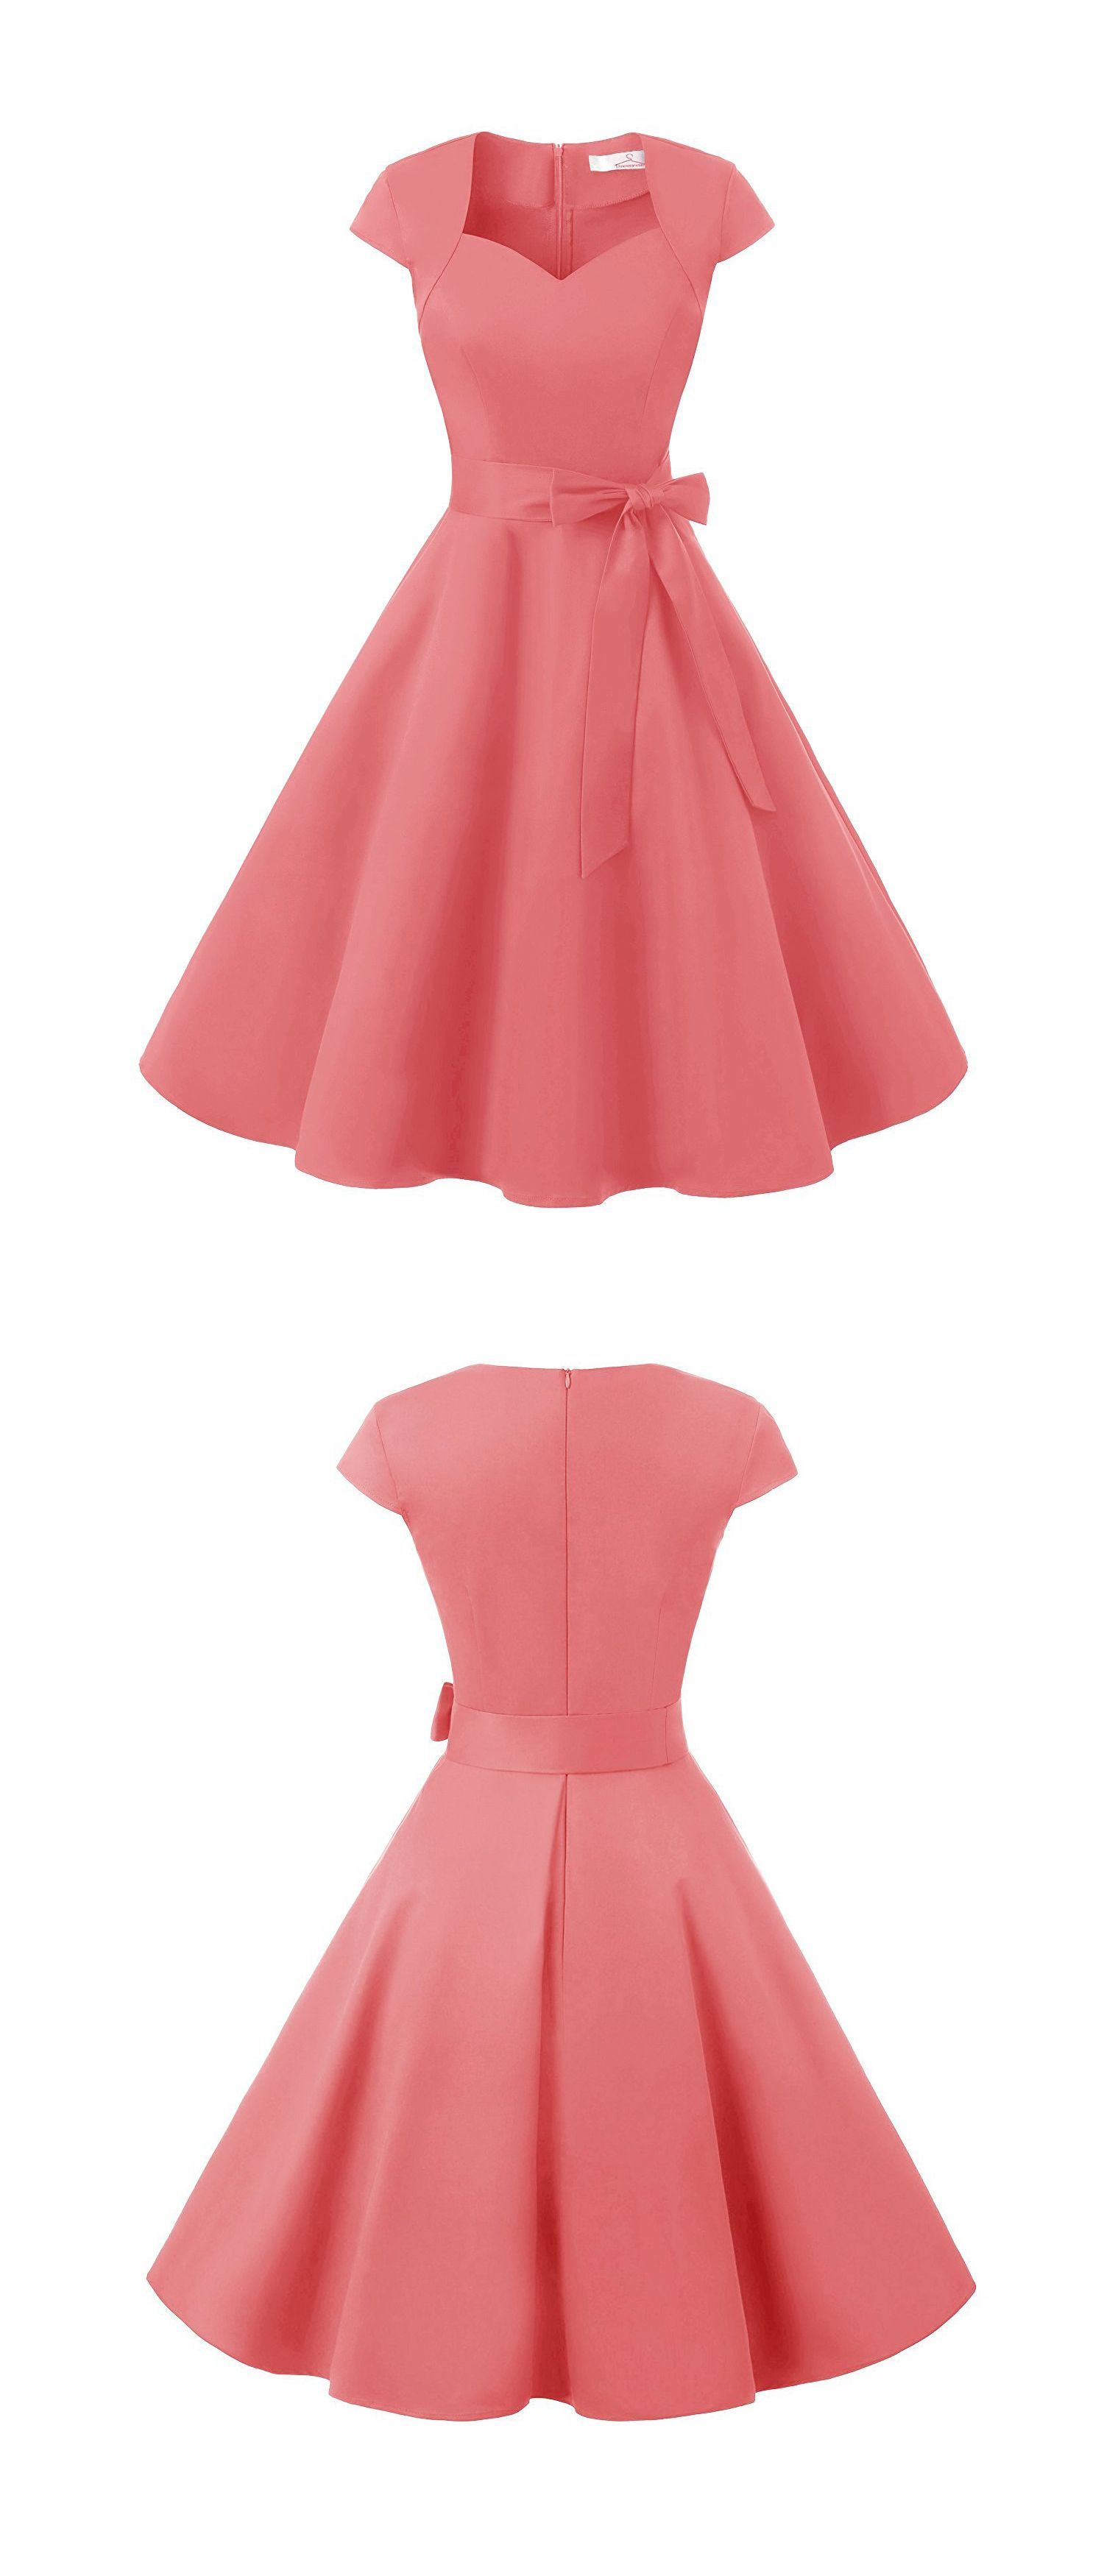 50s Rockabilly Cap Sleeves Pink Swing Retro Party Dress With Bowknot ...